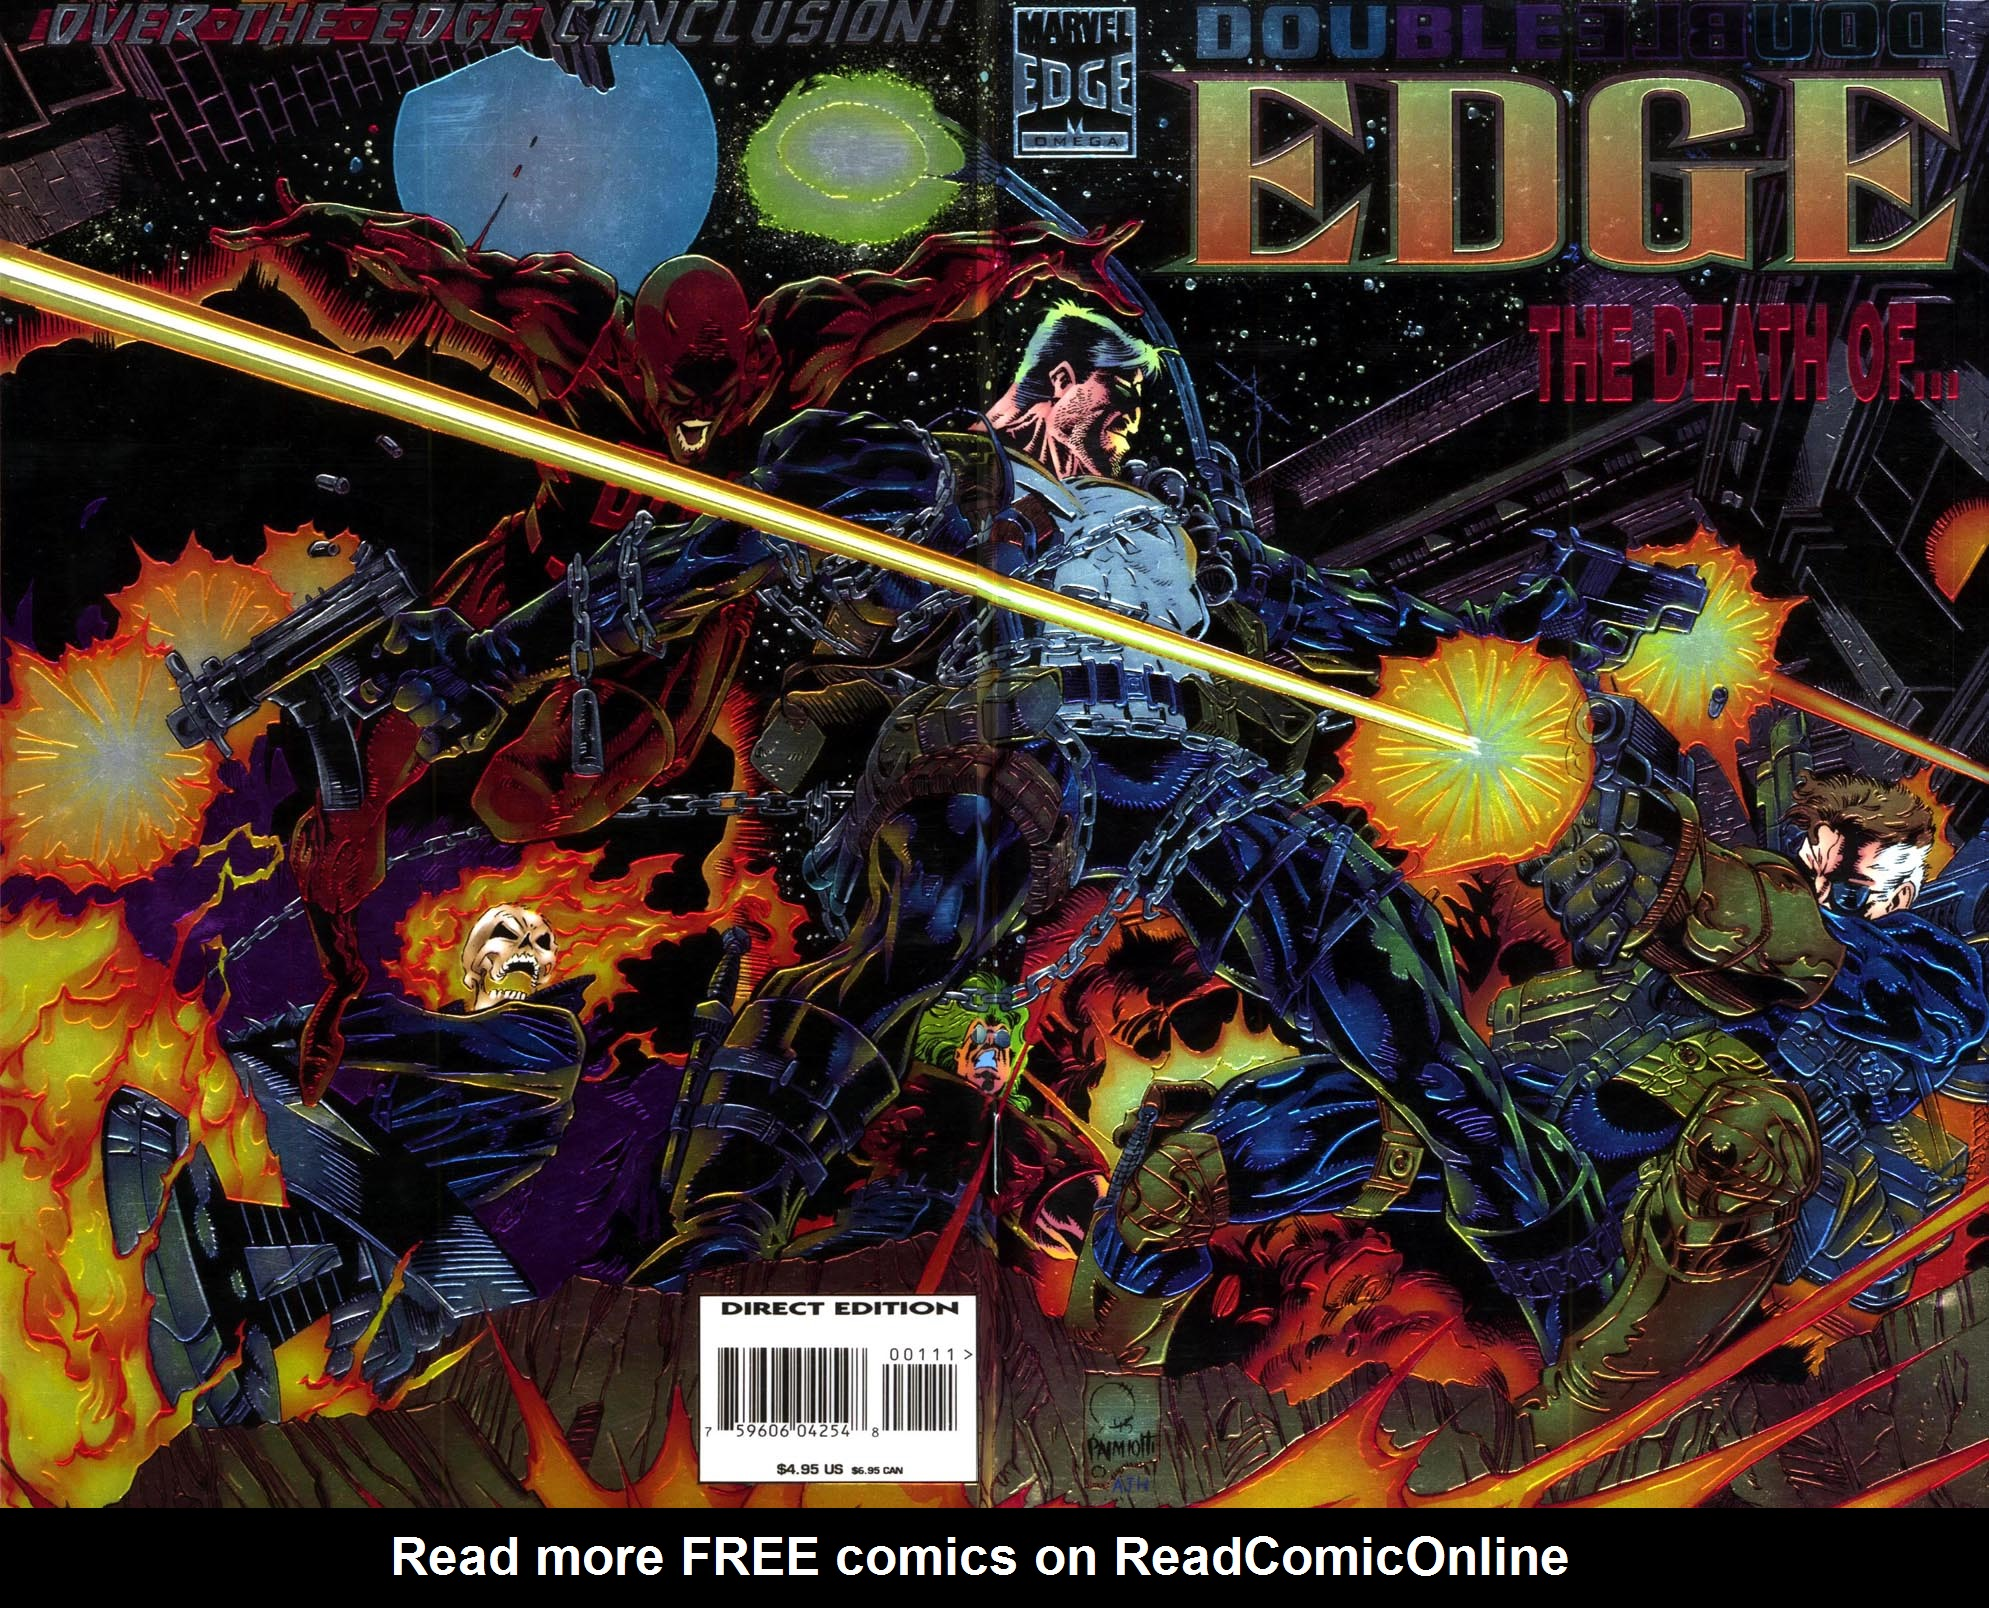 Read online Double Edge comic -  Issue # Issue Omega - 1